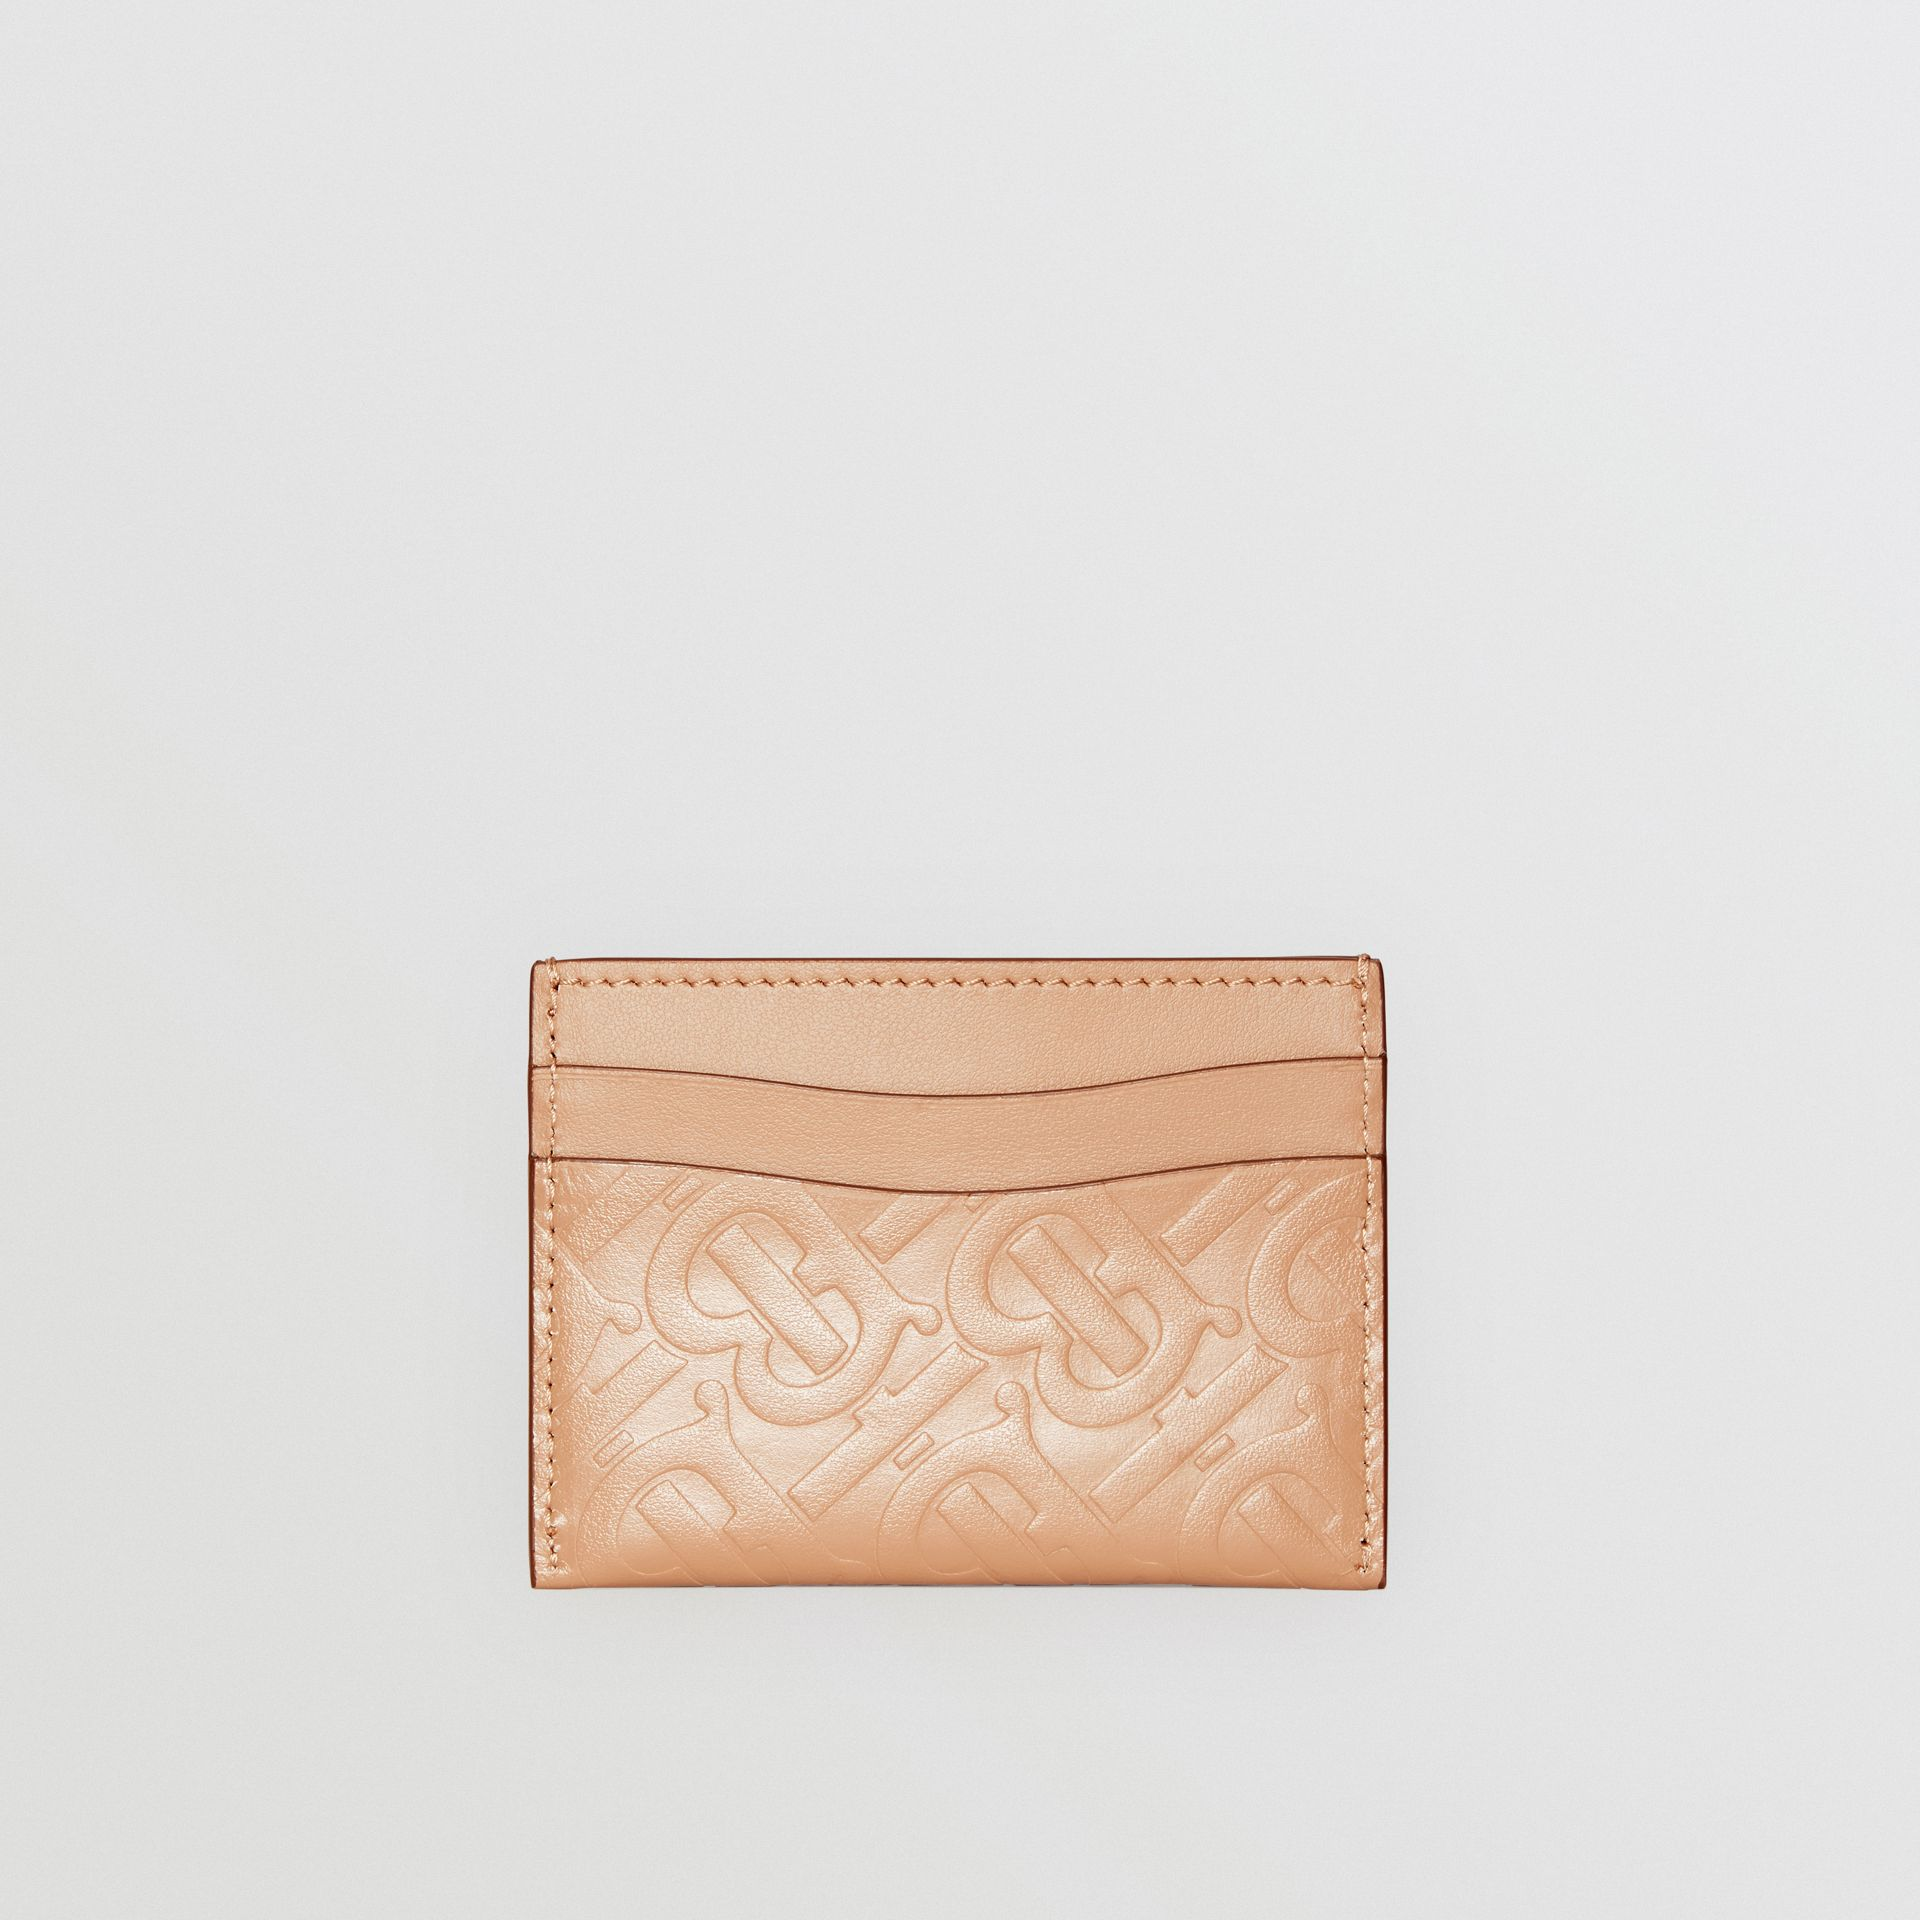 Porte-cartes en cuir Monogram (Camel Clair) - Femme | Burberry - photo de la galerie 4